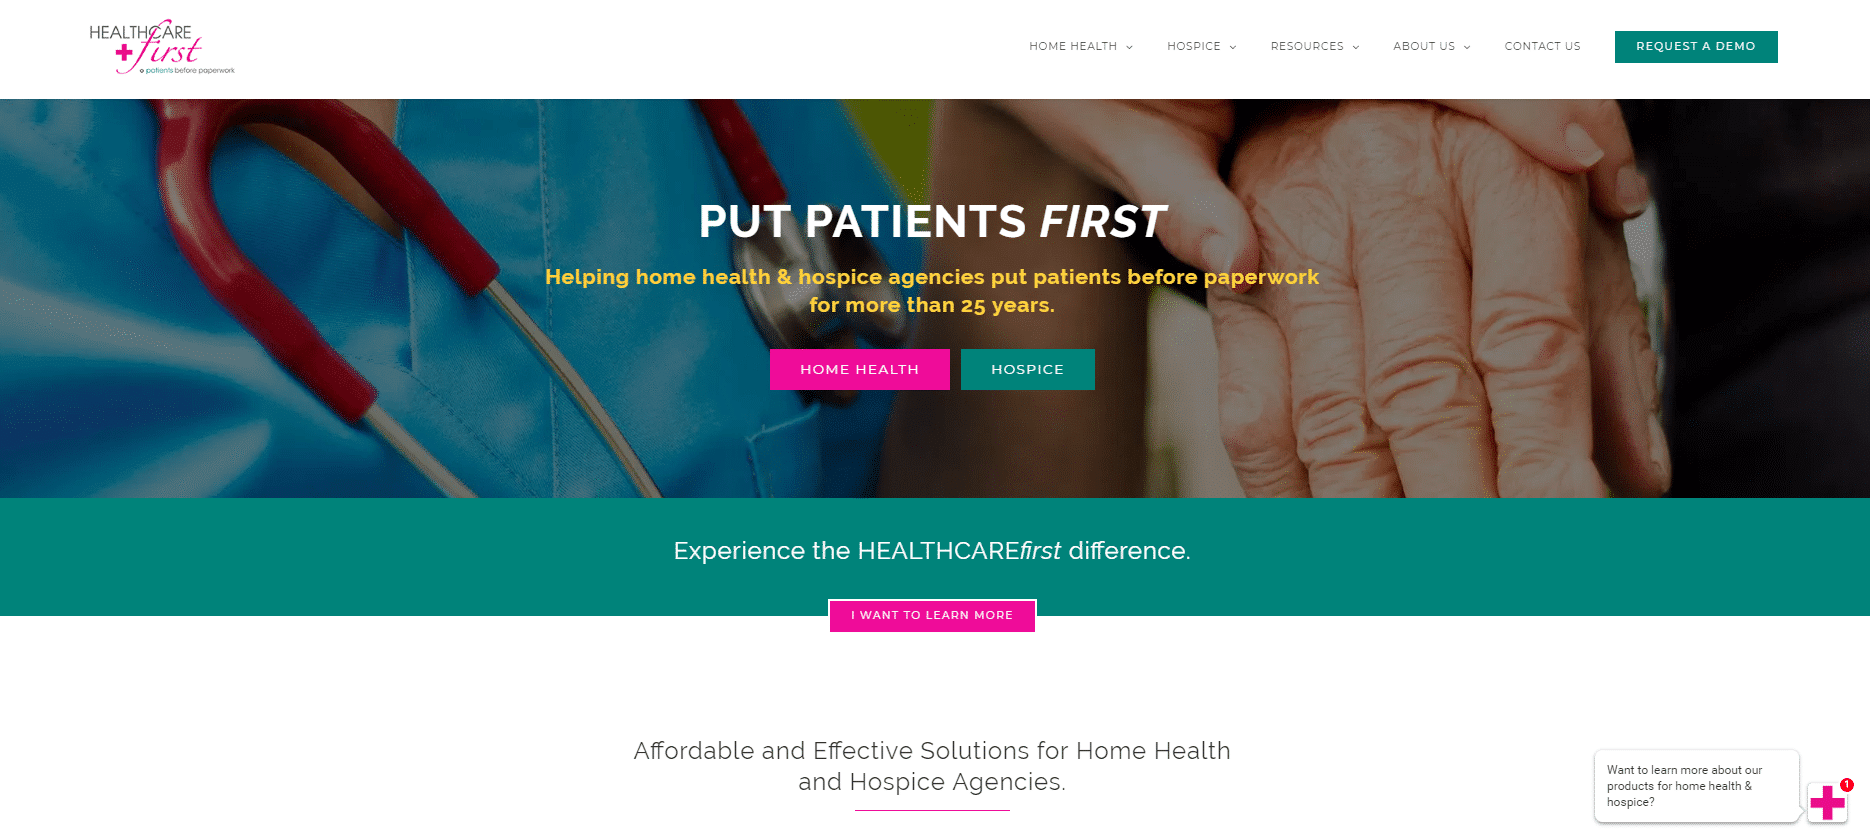 Healthcare first